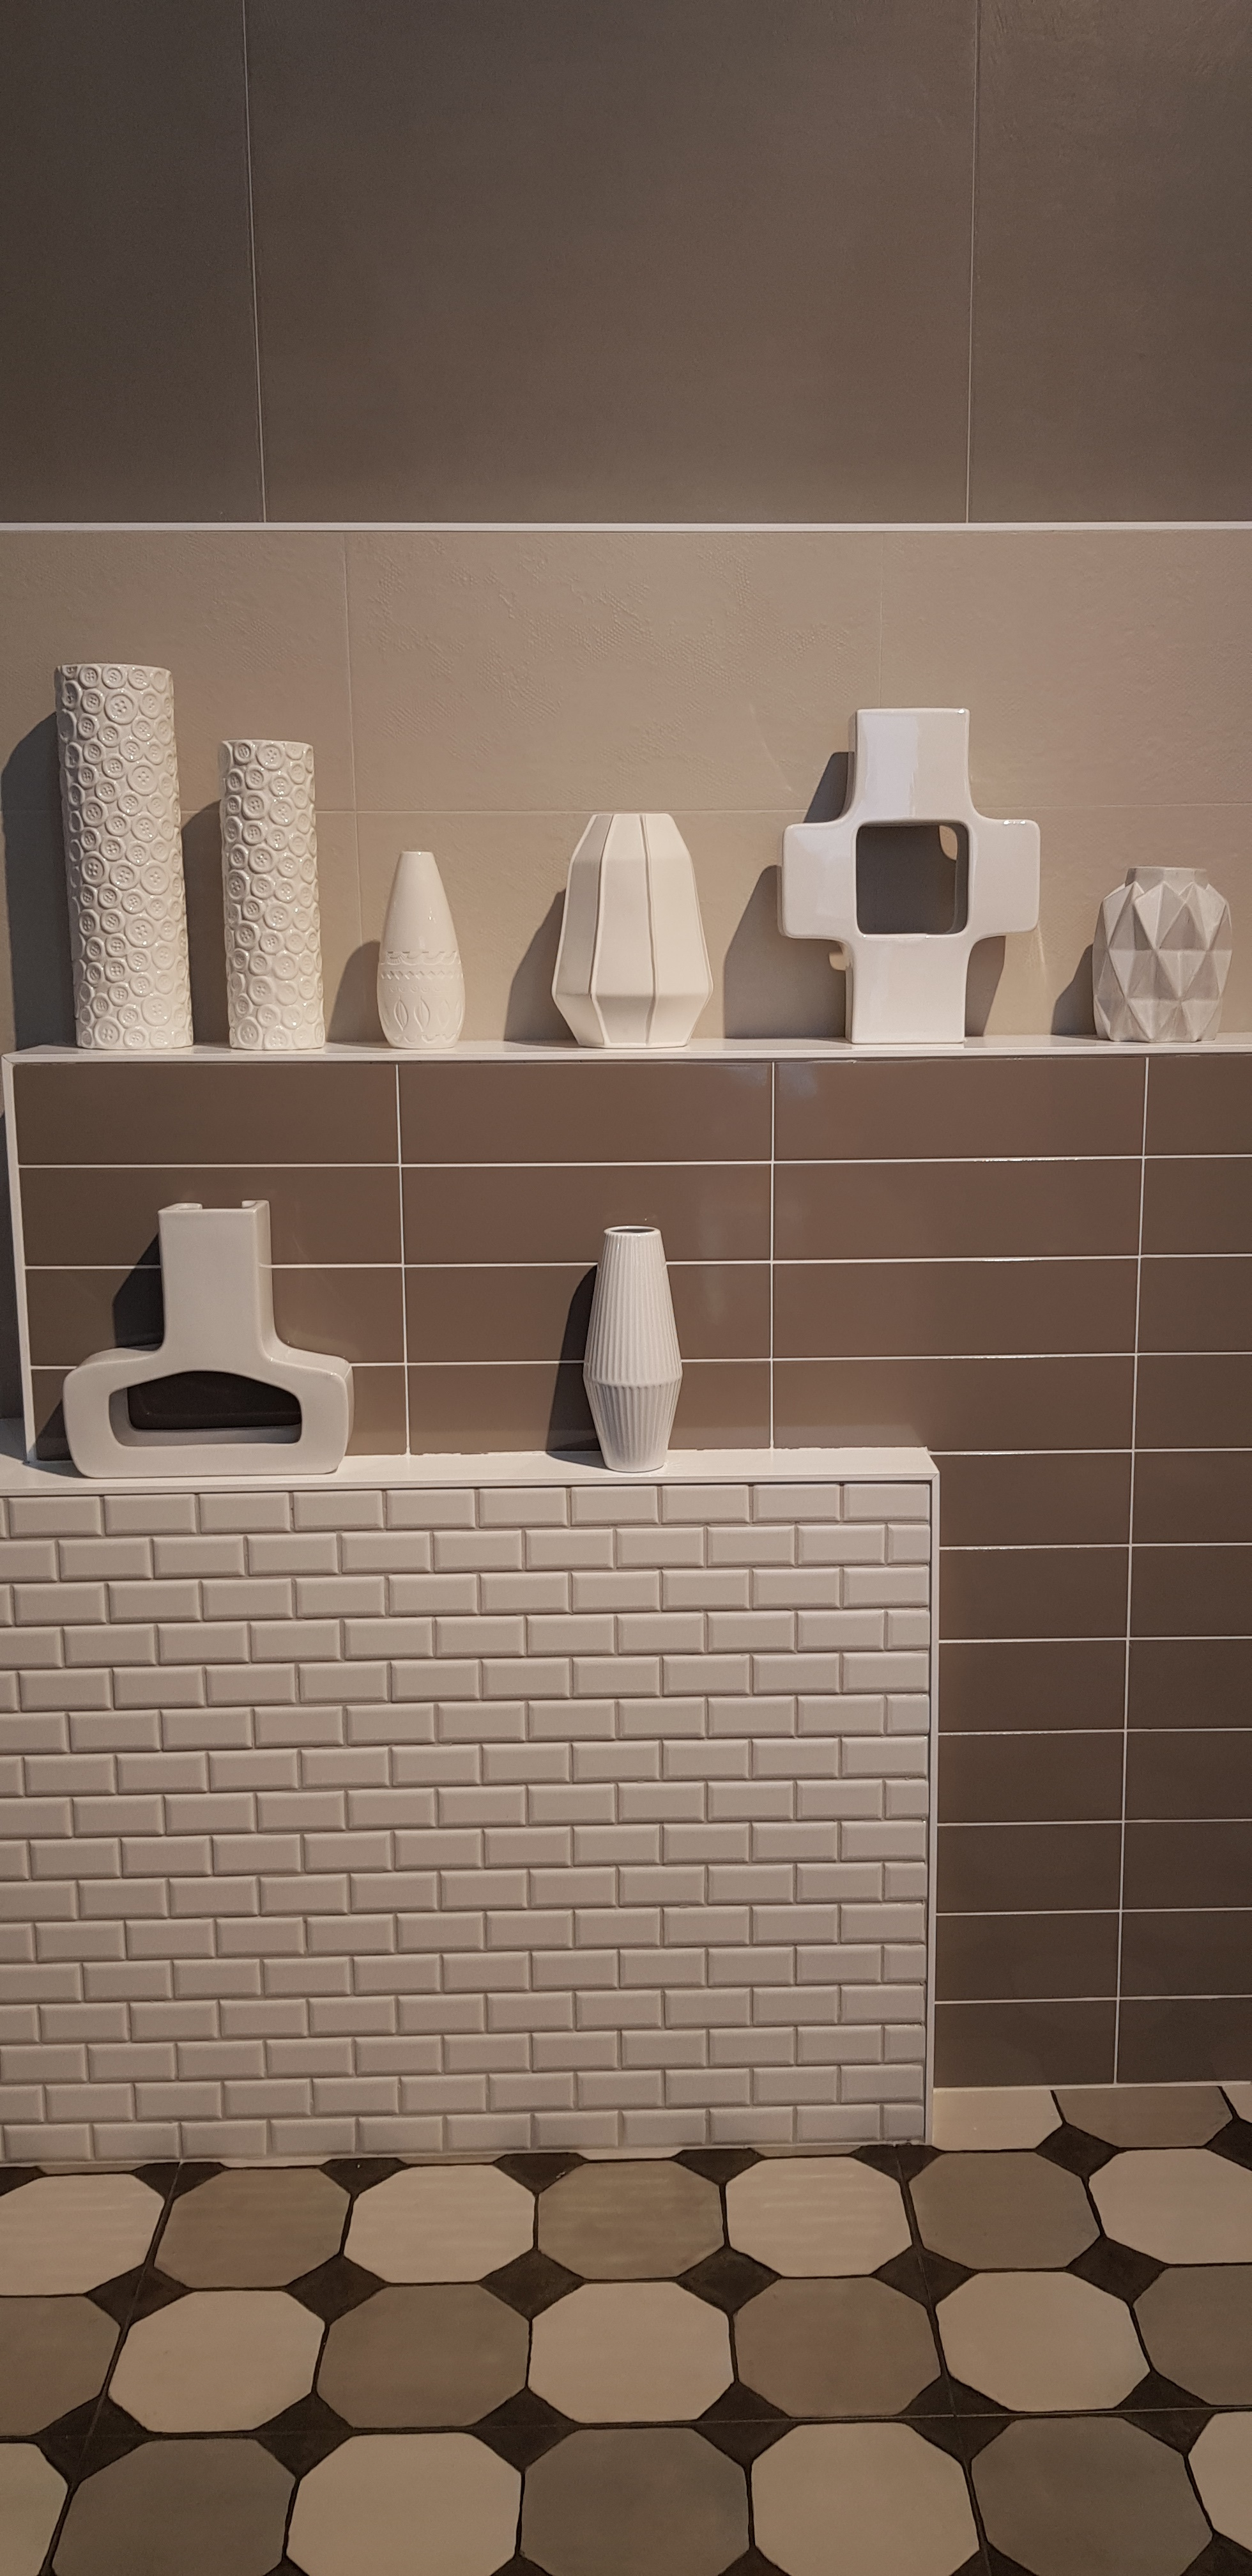 Plaster by Roca Sanitario